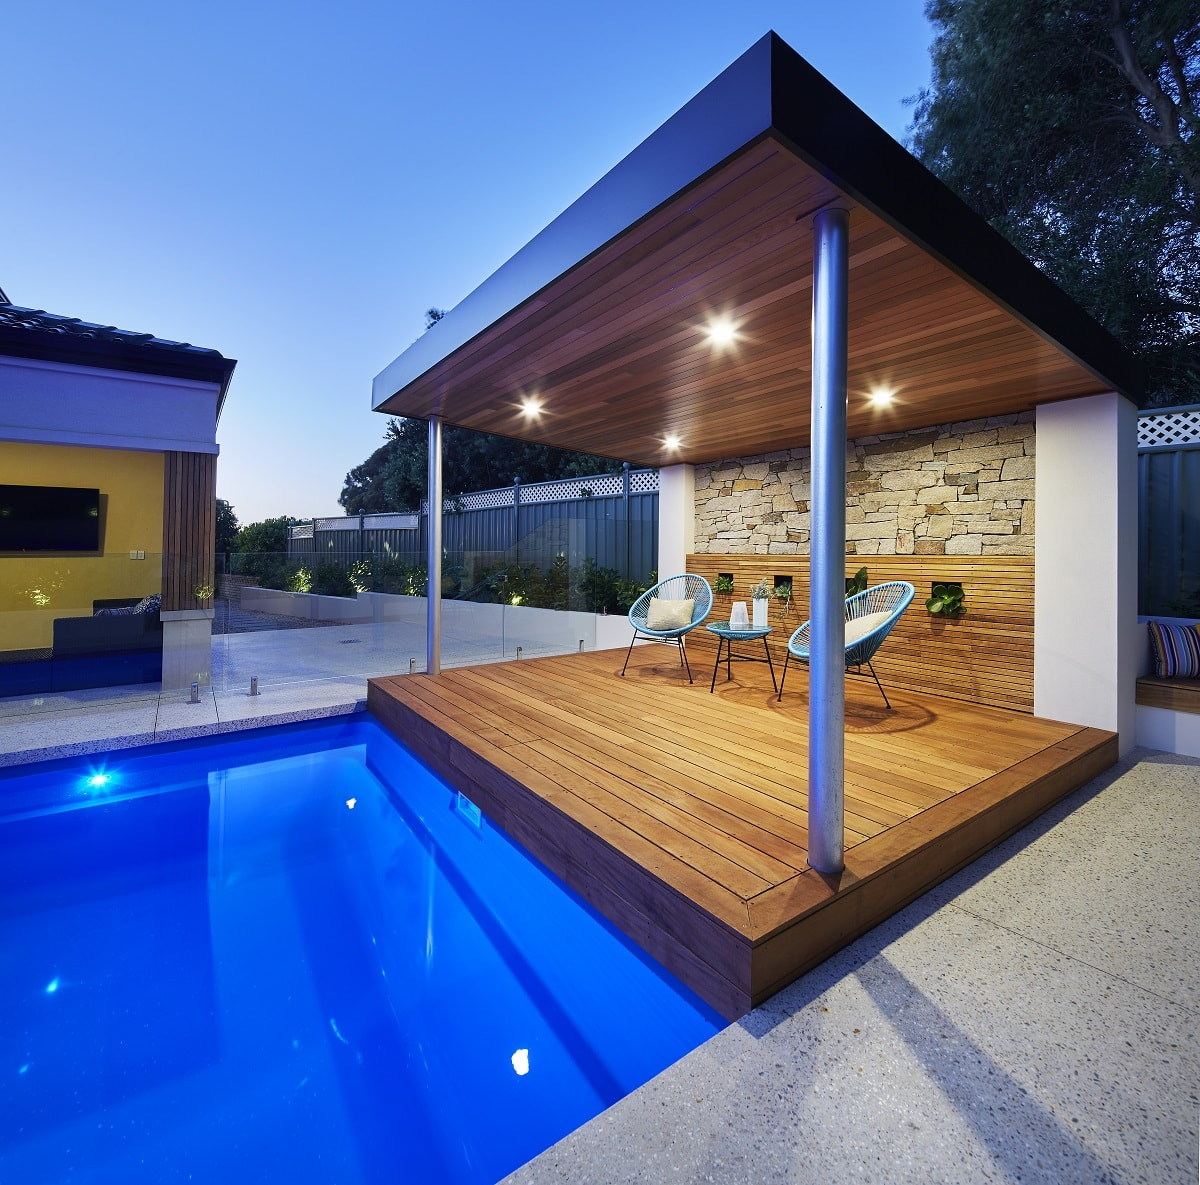 Brooklyn Pool & Spa 9.6m x 4.4m